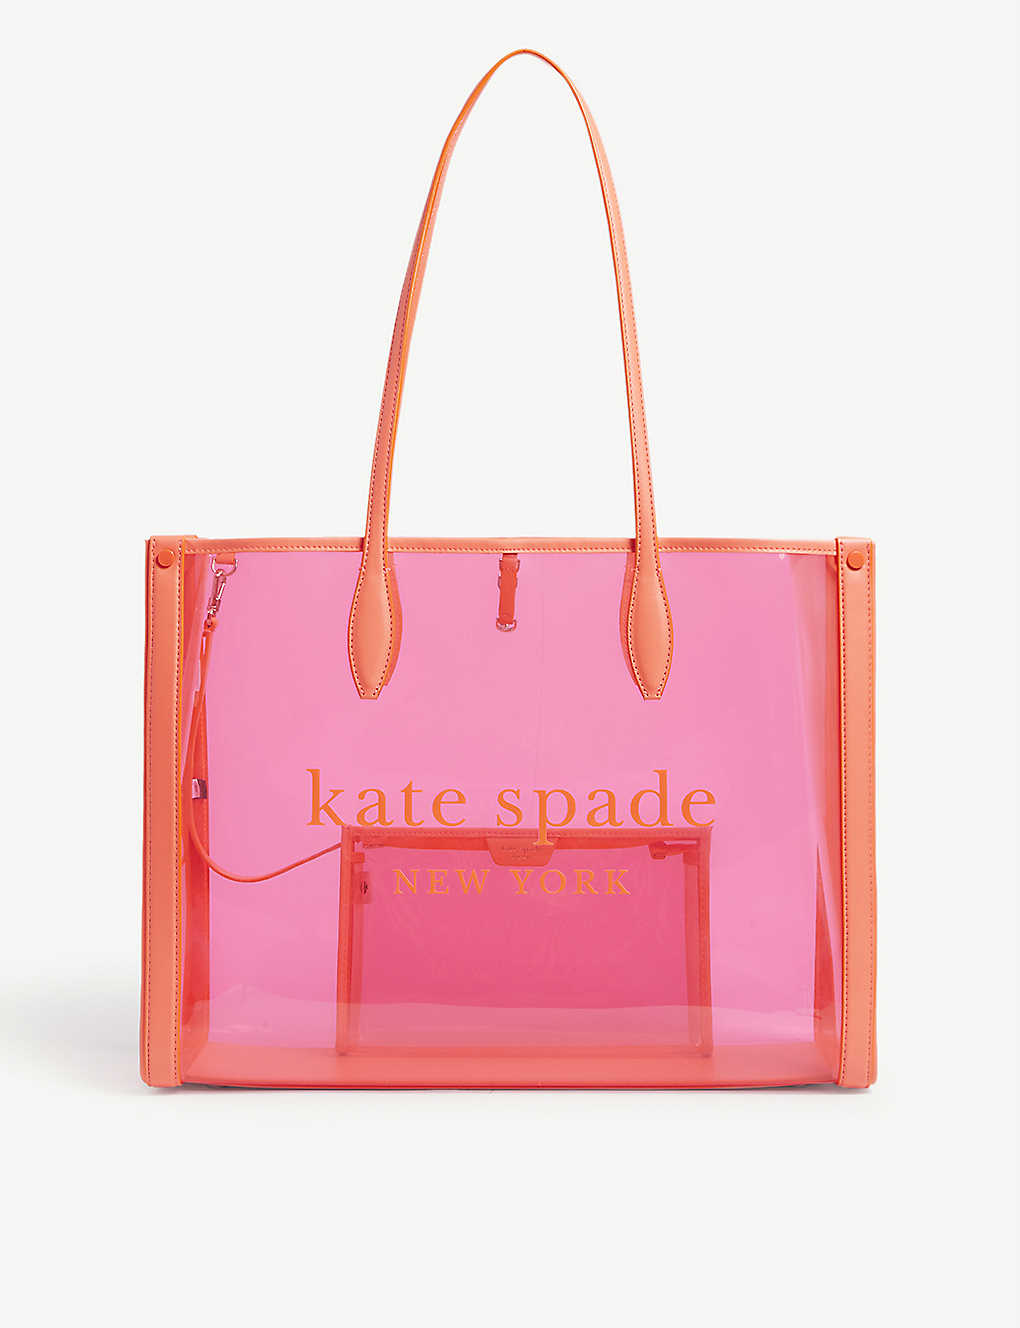 KATE SPADE NEW YORK: Clear tote bag